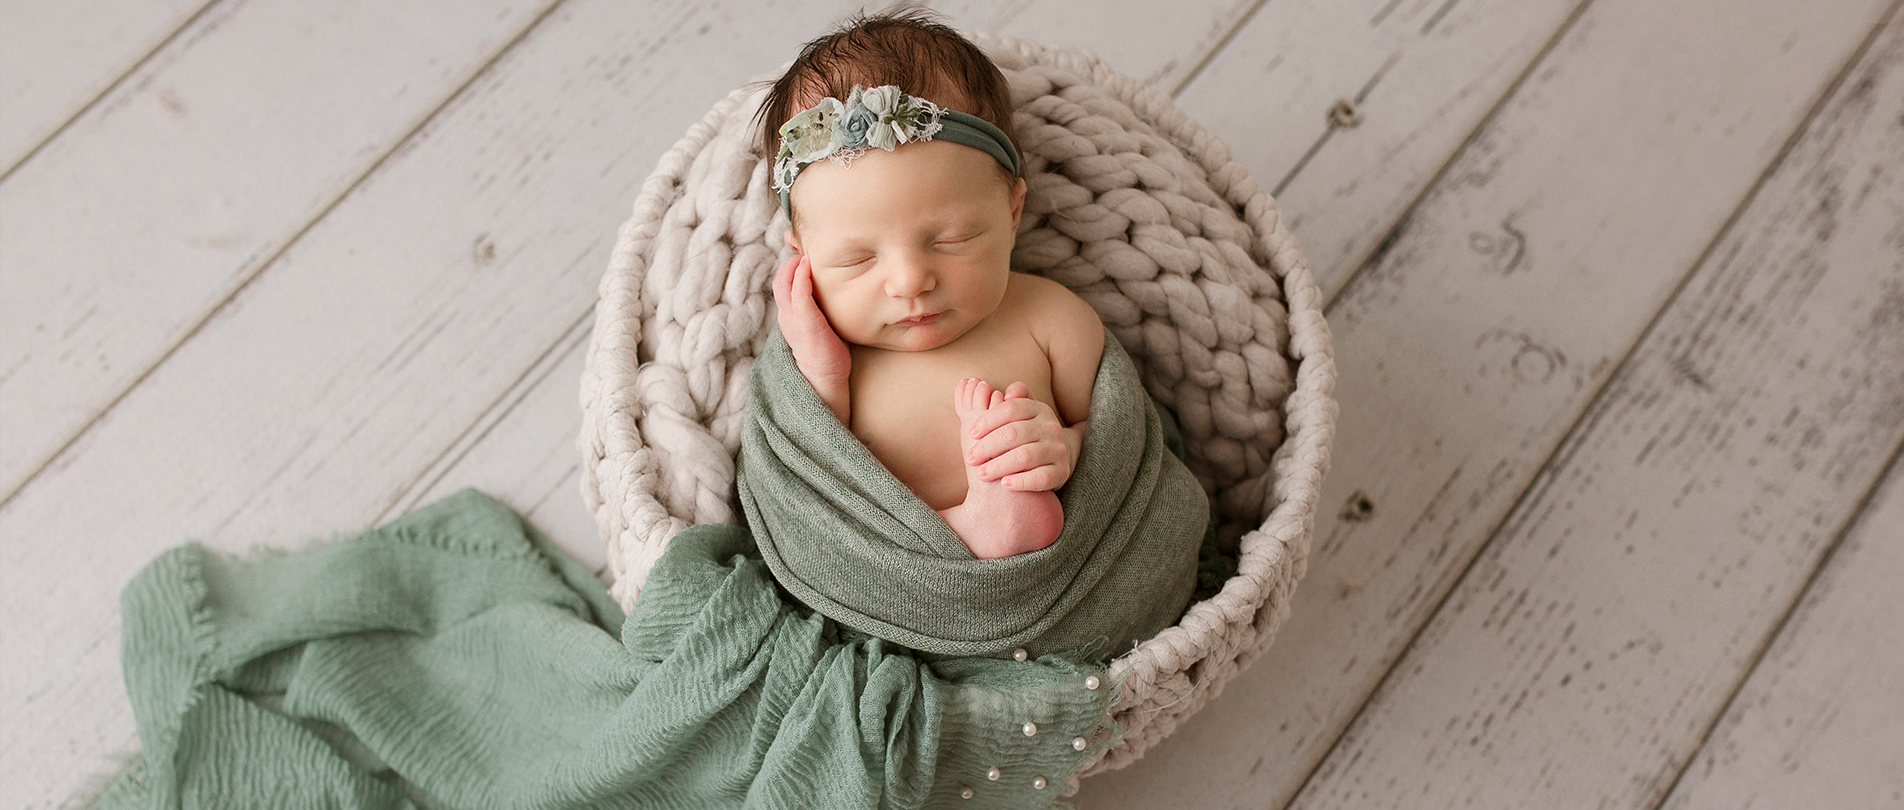 metro detroit newborn photographer brighton howell ann arbor 2020